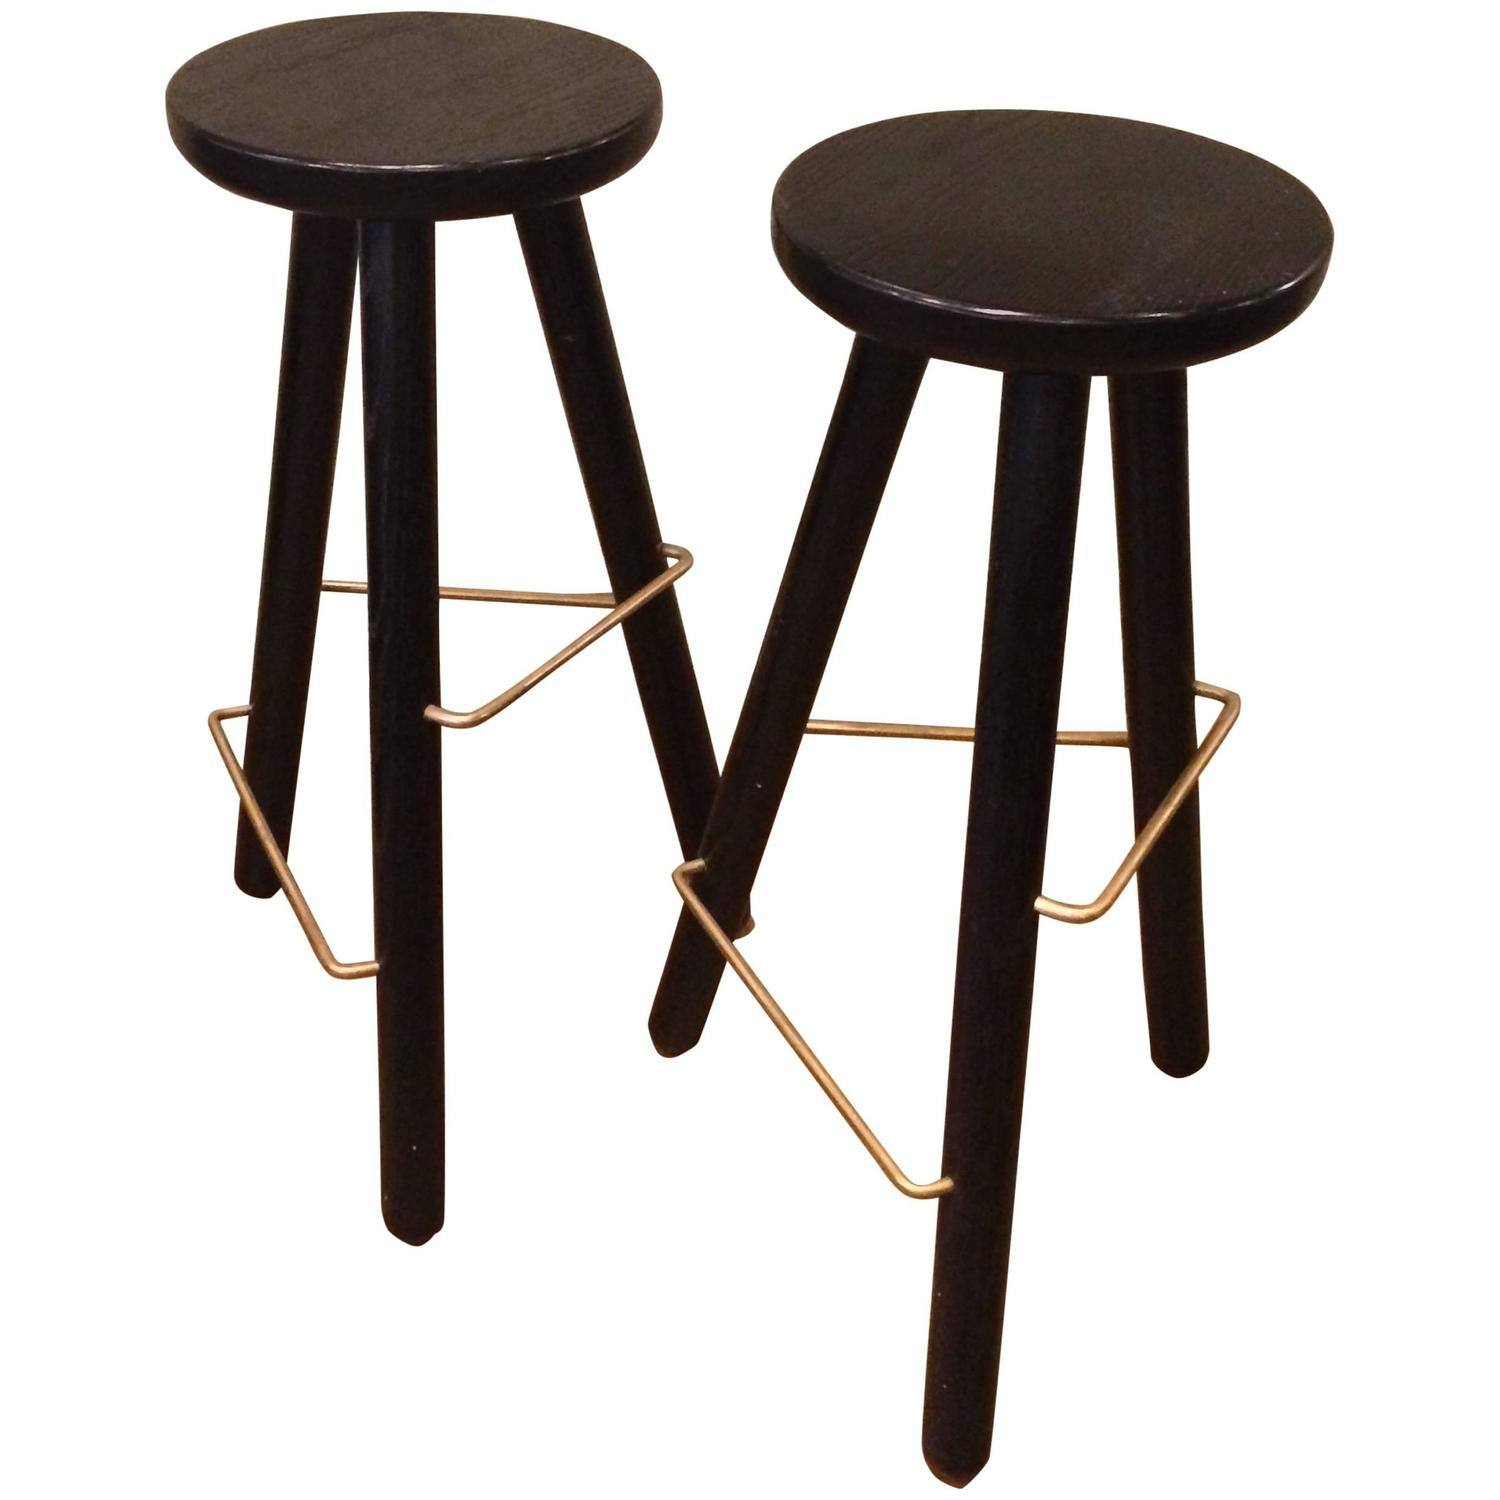 Very Impressive portraiture of  Ebonized Ash Bar Stools with Brass Footrests For Sale at 1stdibs with #8E653D color and 1500x1500 pixels